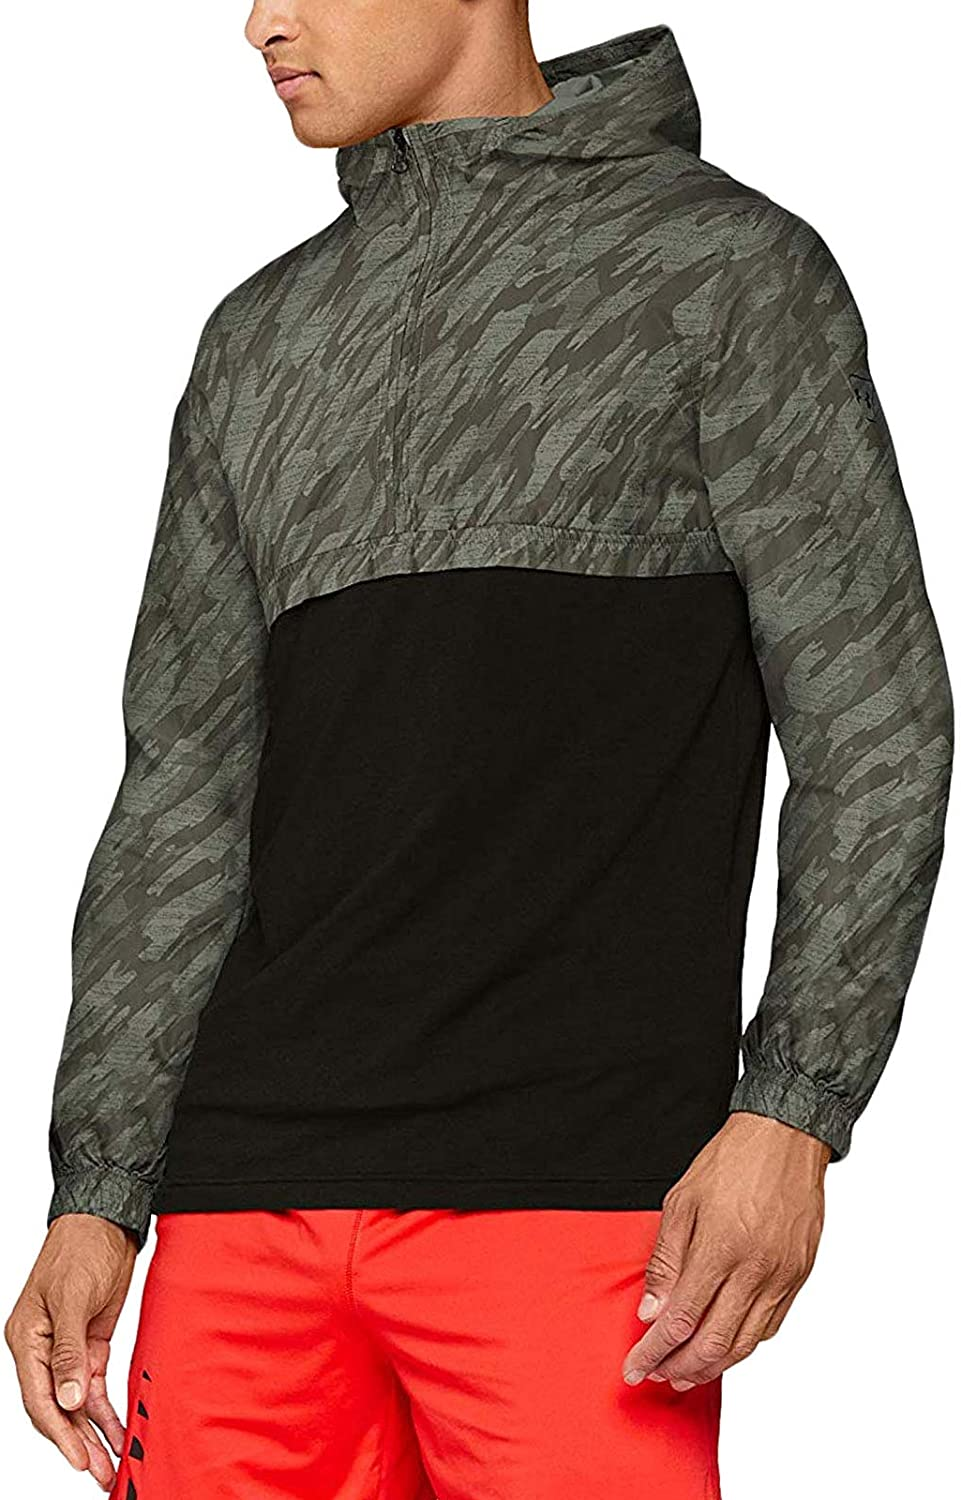 Under Armour Mens Sportstyle Long Sleeve Anorak - Moss Green - XS